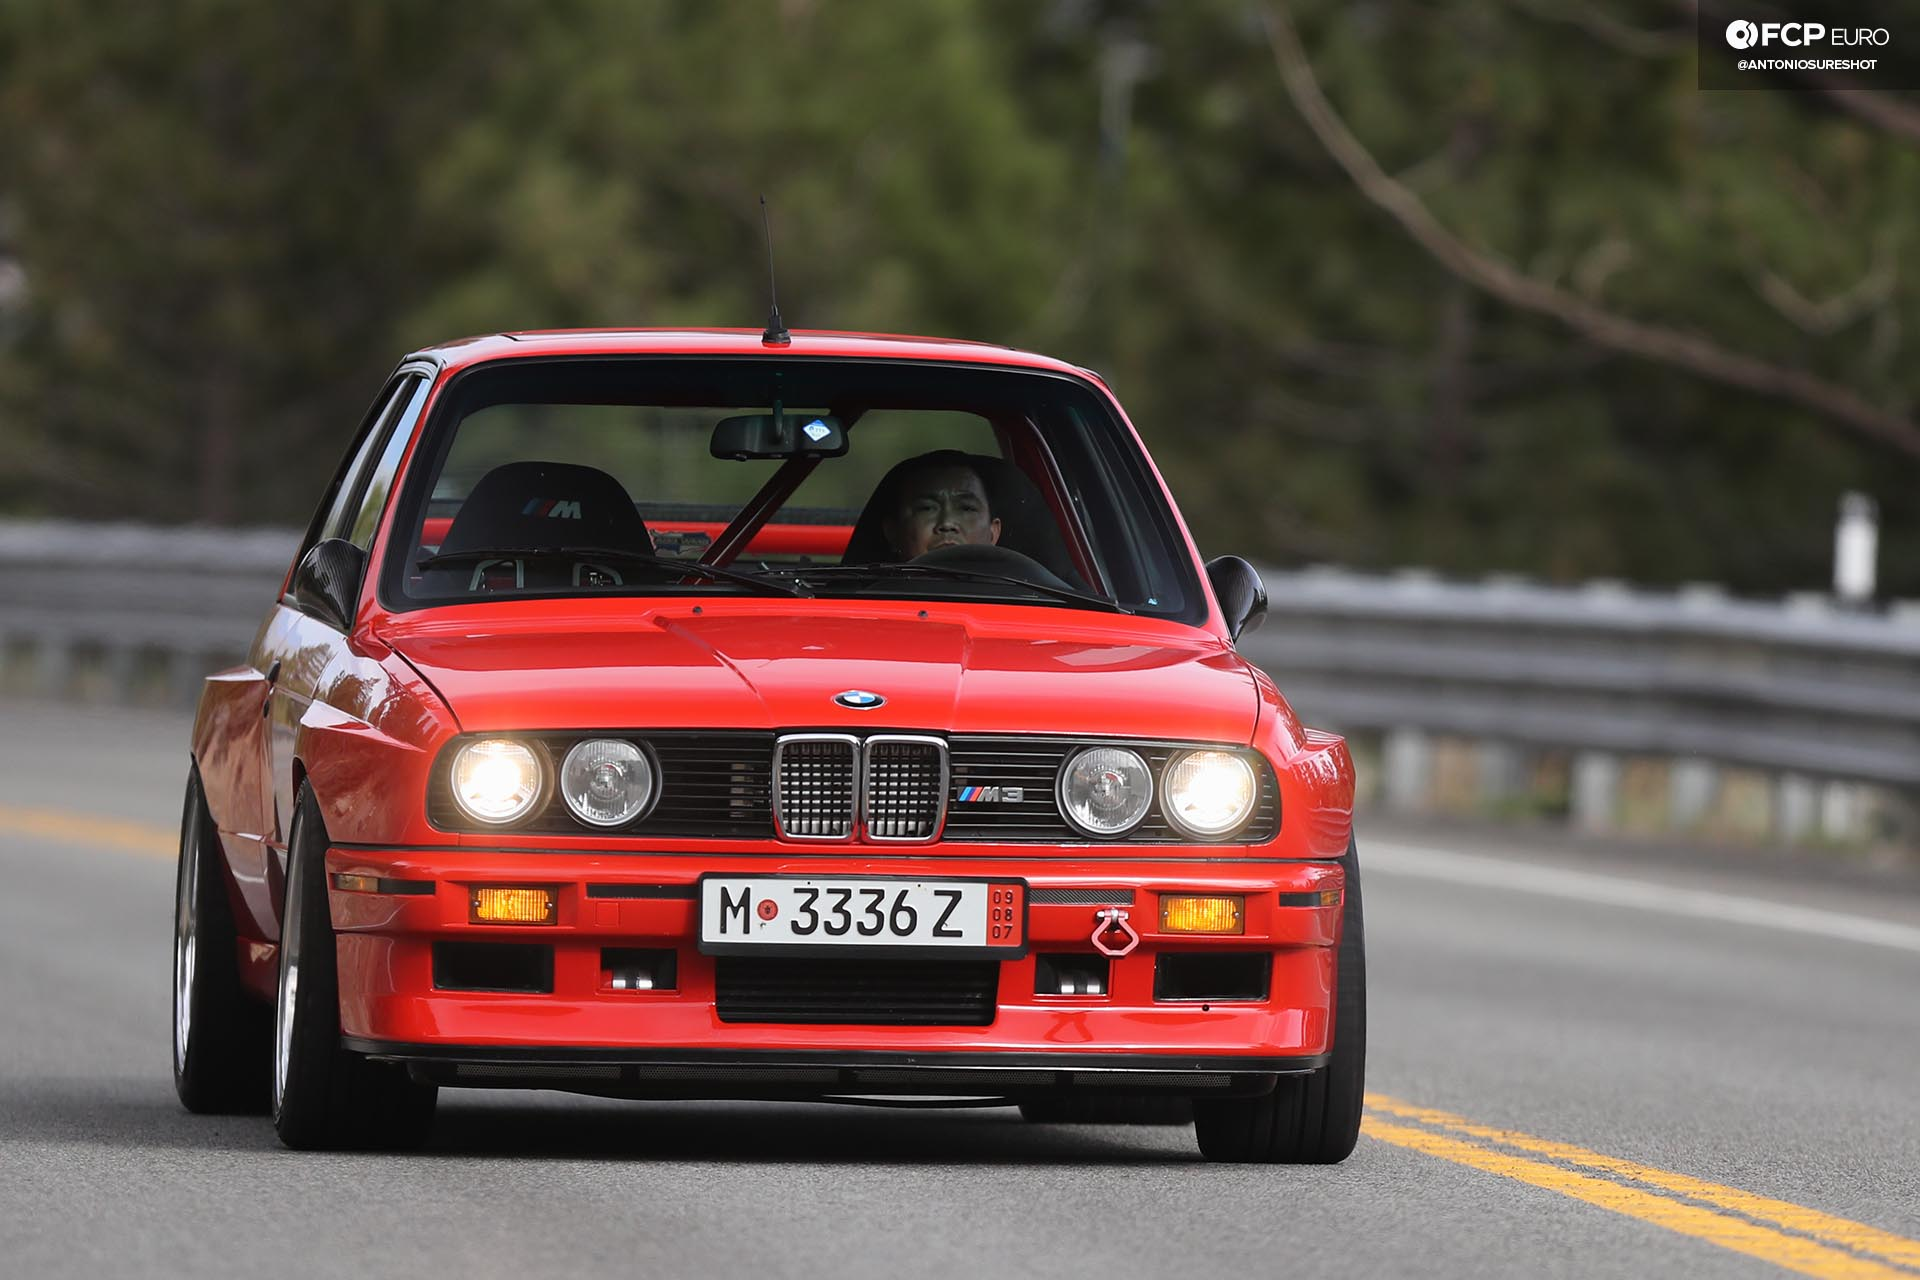 E30 M3 Evo Supercharged metal widebody Sierra Mountains Bilstein Eibach Ground Control AKG Ireland Engineering